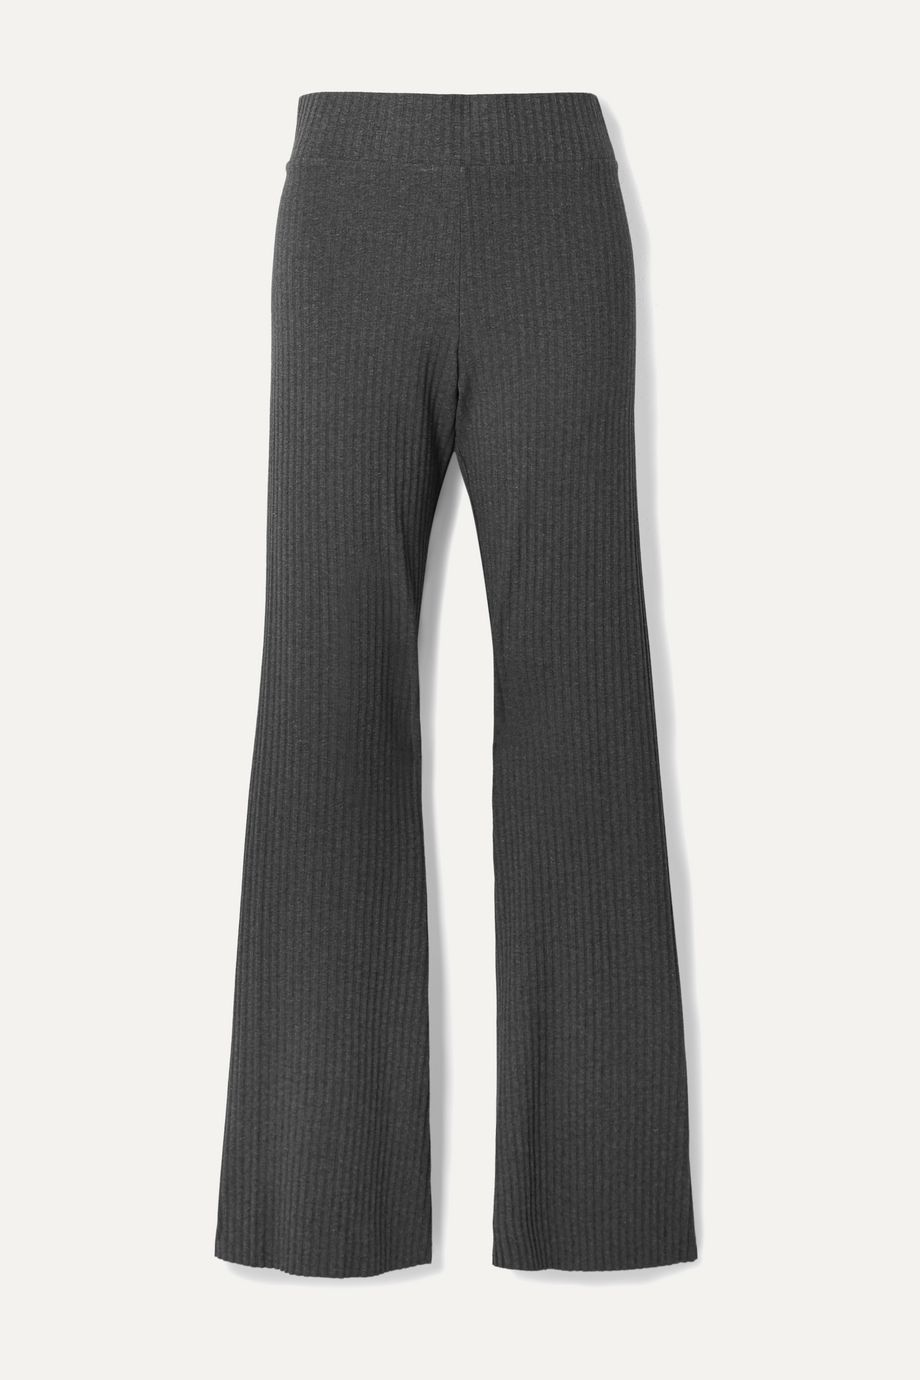 calé Angelique ribbed stretch-jersey flared pants